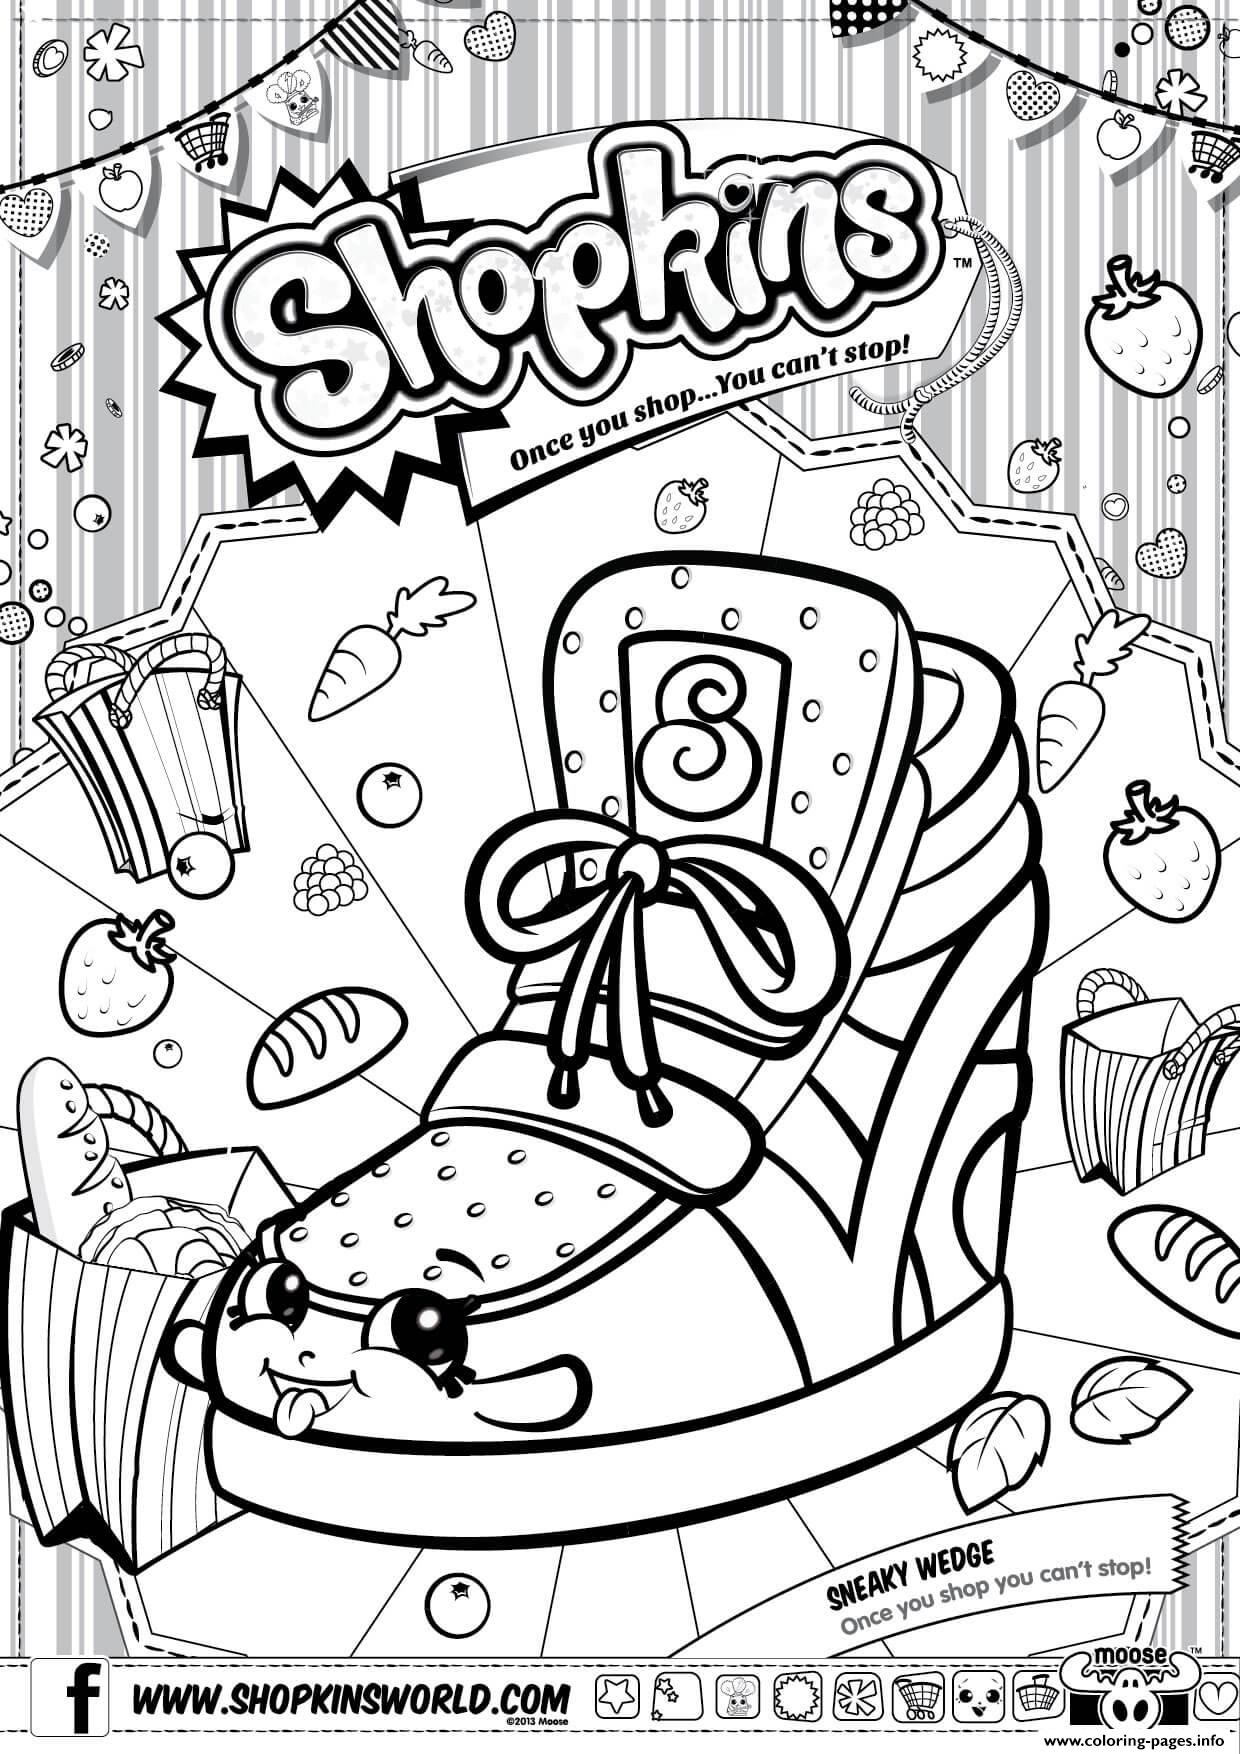 Shopkins Sneaky Wedge Coloring Pages Print Download 377 Prints